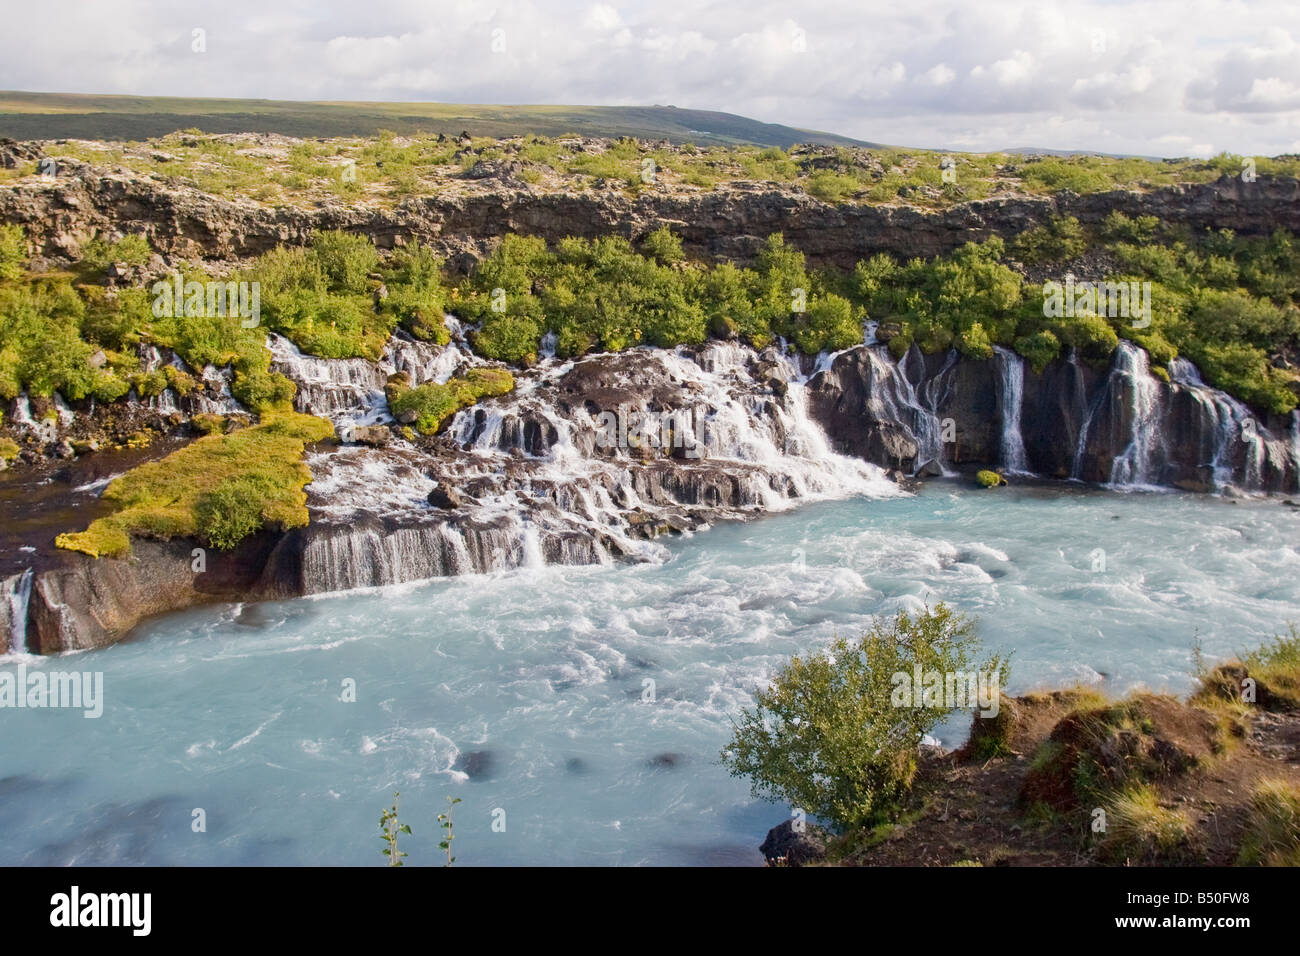 Wild water at Hraunfossar, Iceland - Stock Image